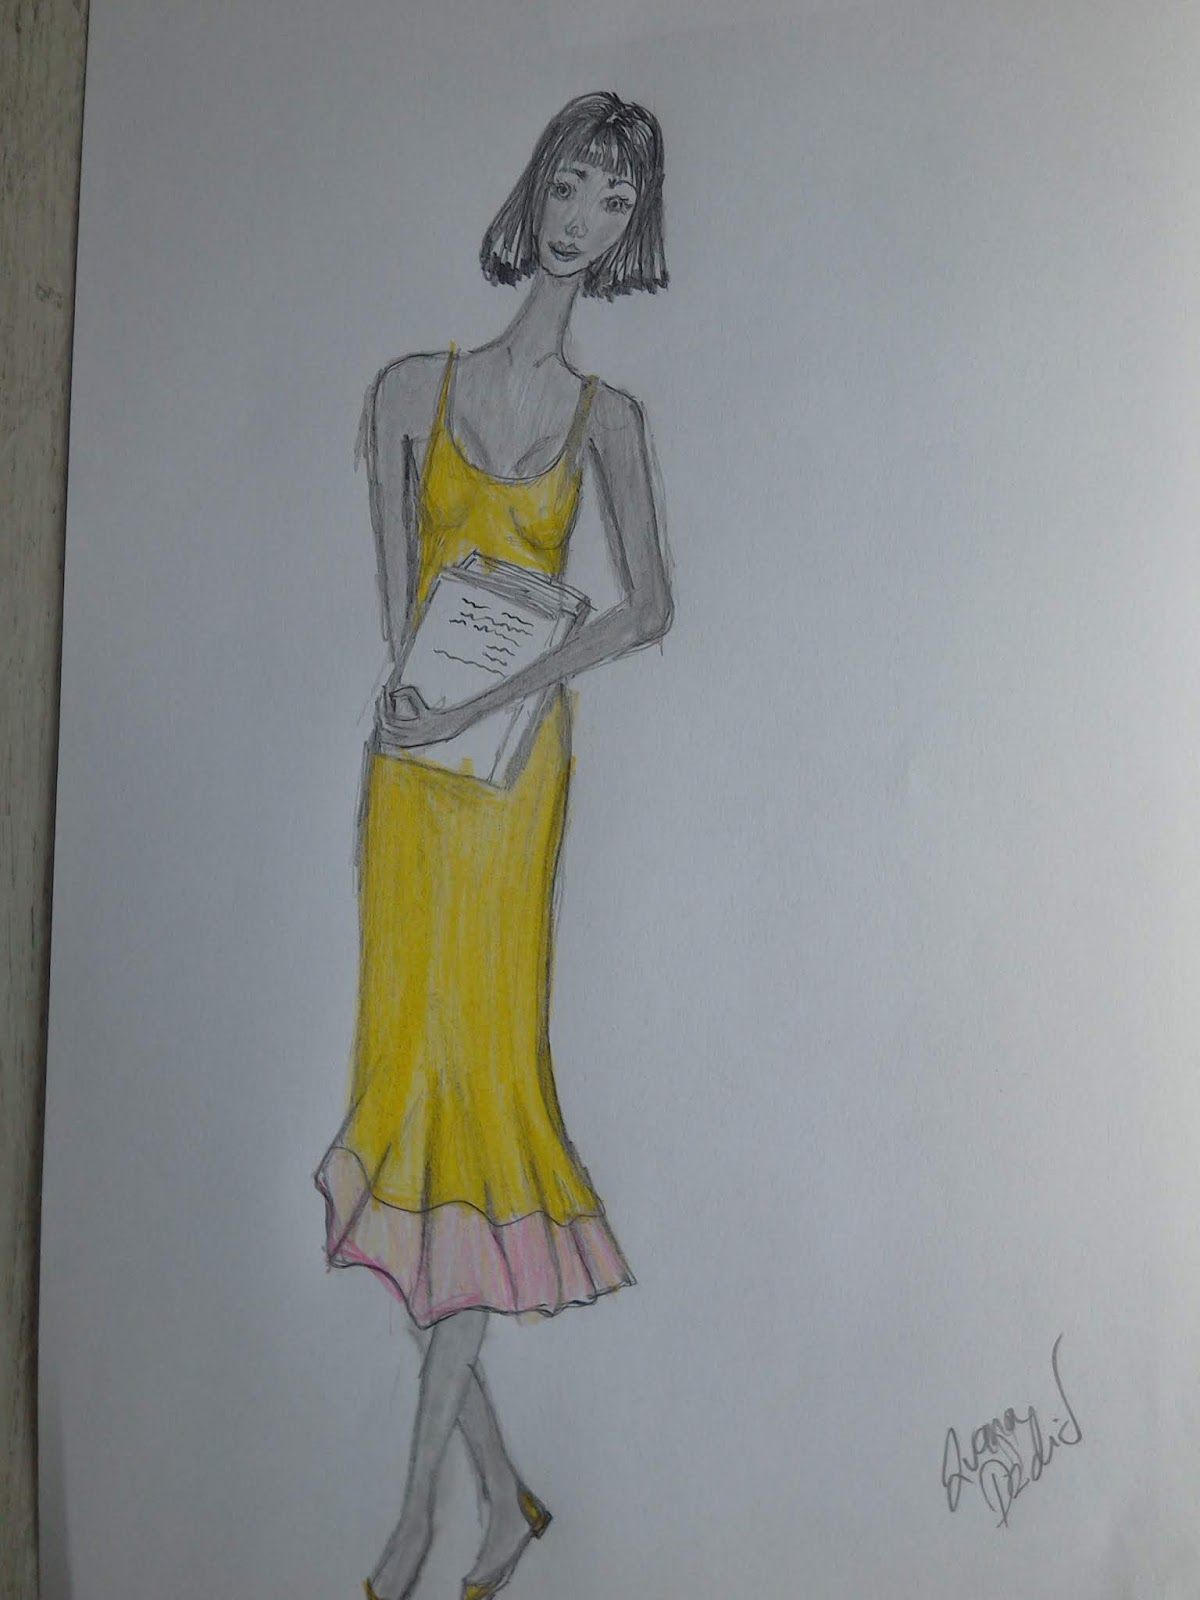 Bookworm Girls Wearing Yellow Dresses ( Fashion illustrations of the day)